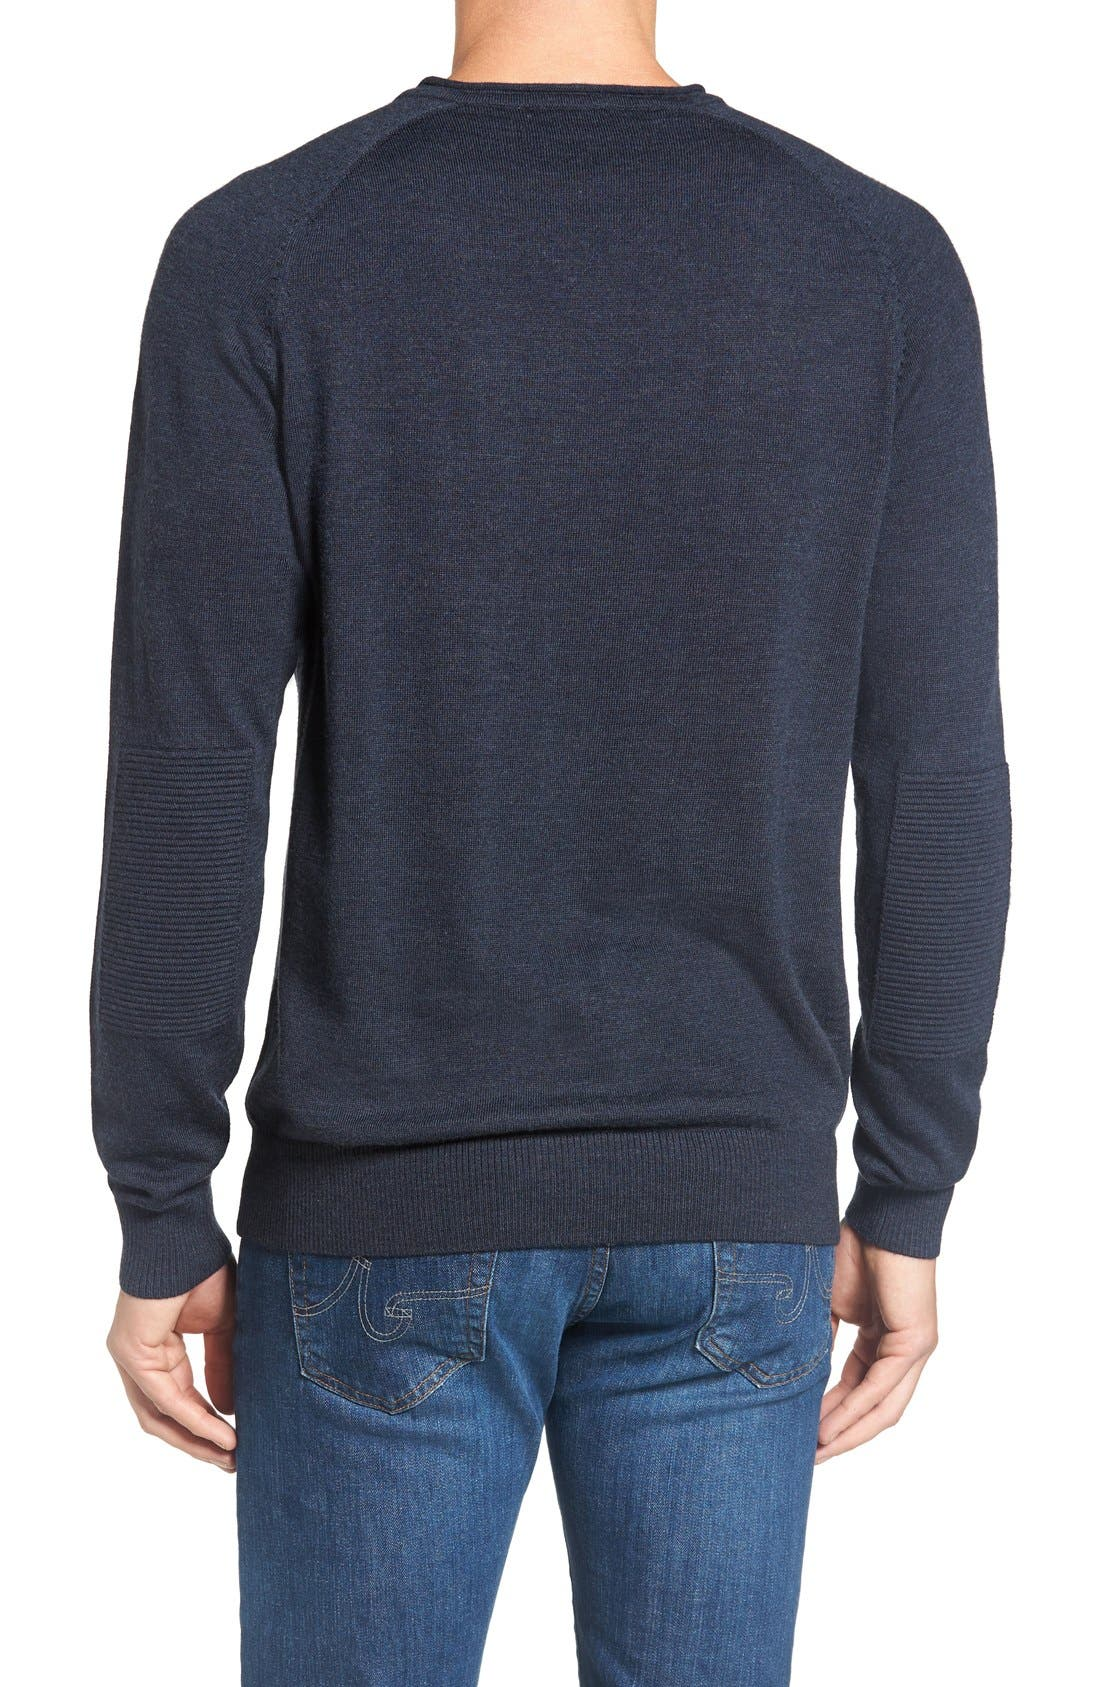 Alternate Image 2  - Rodd & Gunn 'Burwood Bay' Wool V-Neck Sweater